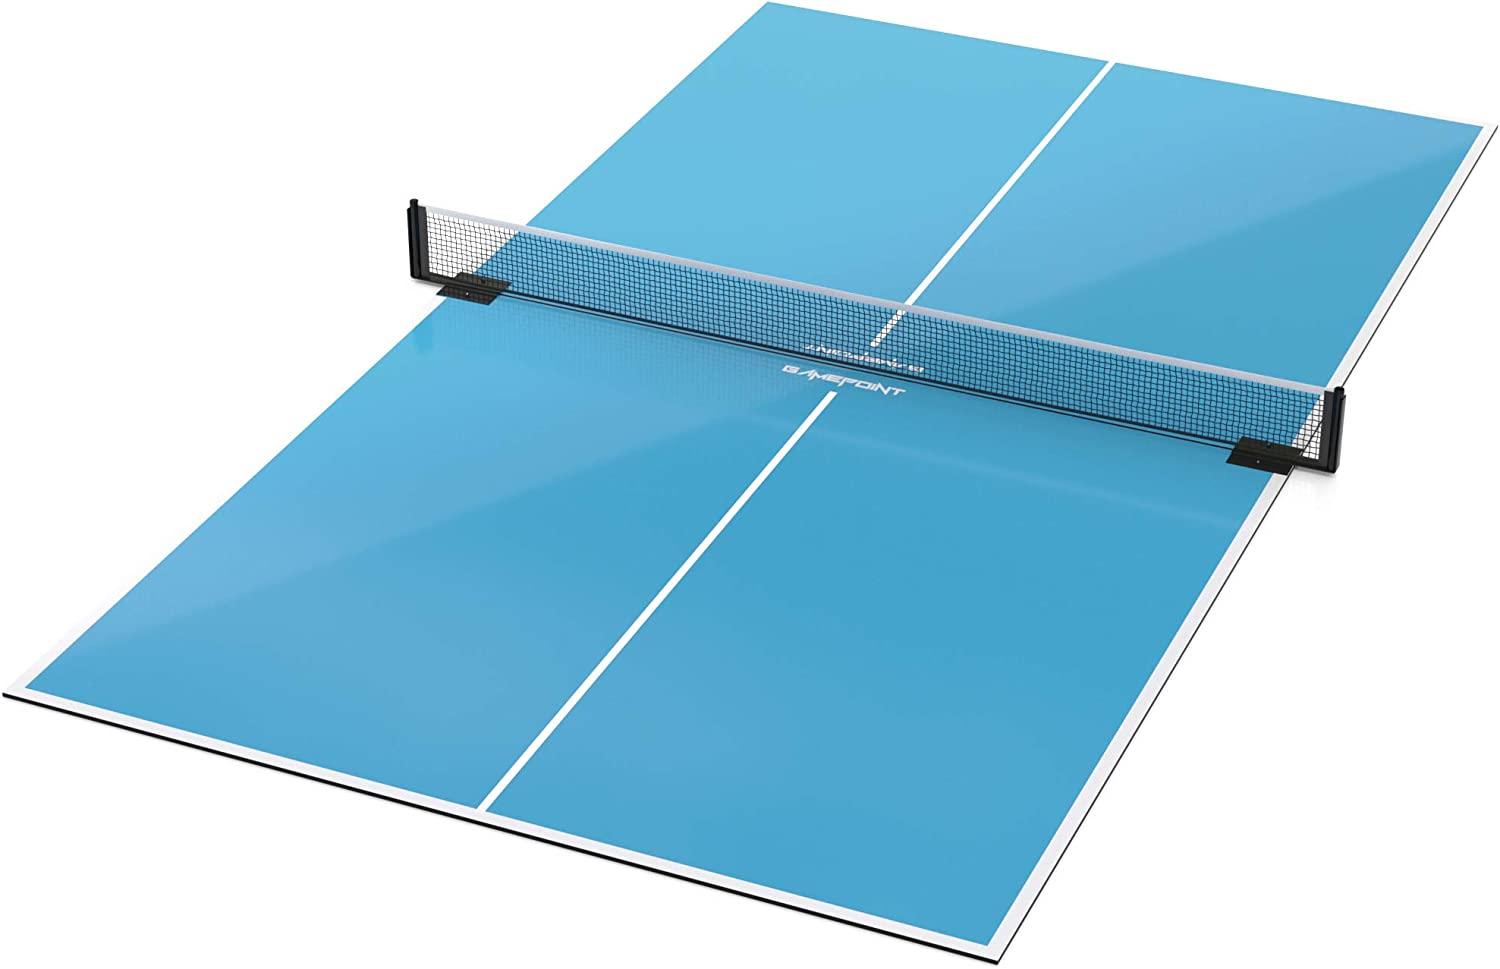 Popular products GamePoint Tables Table Tennis Conversion Includes New products world's highest quality popular - Net and Top